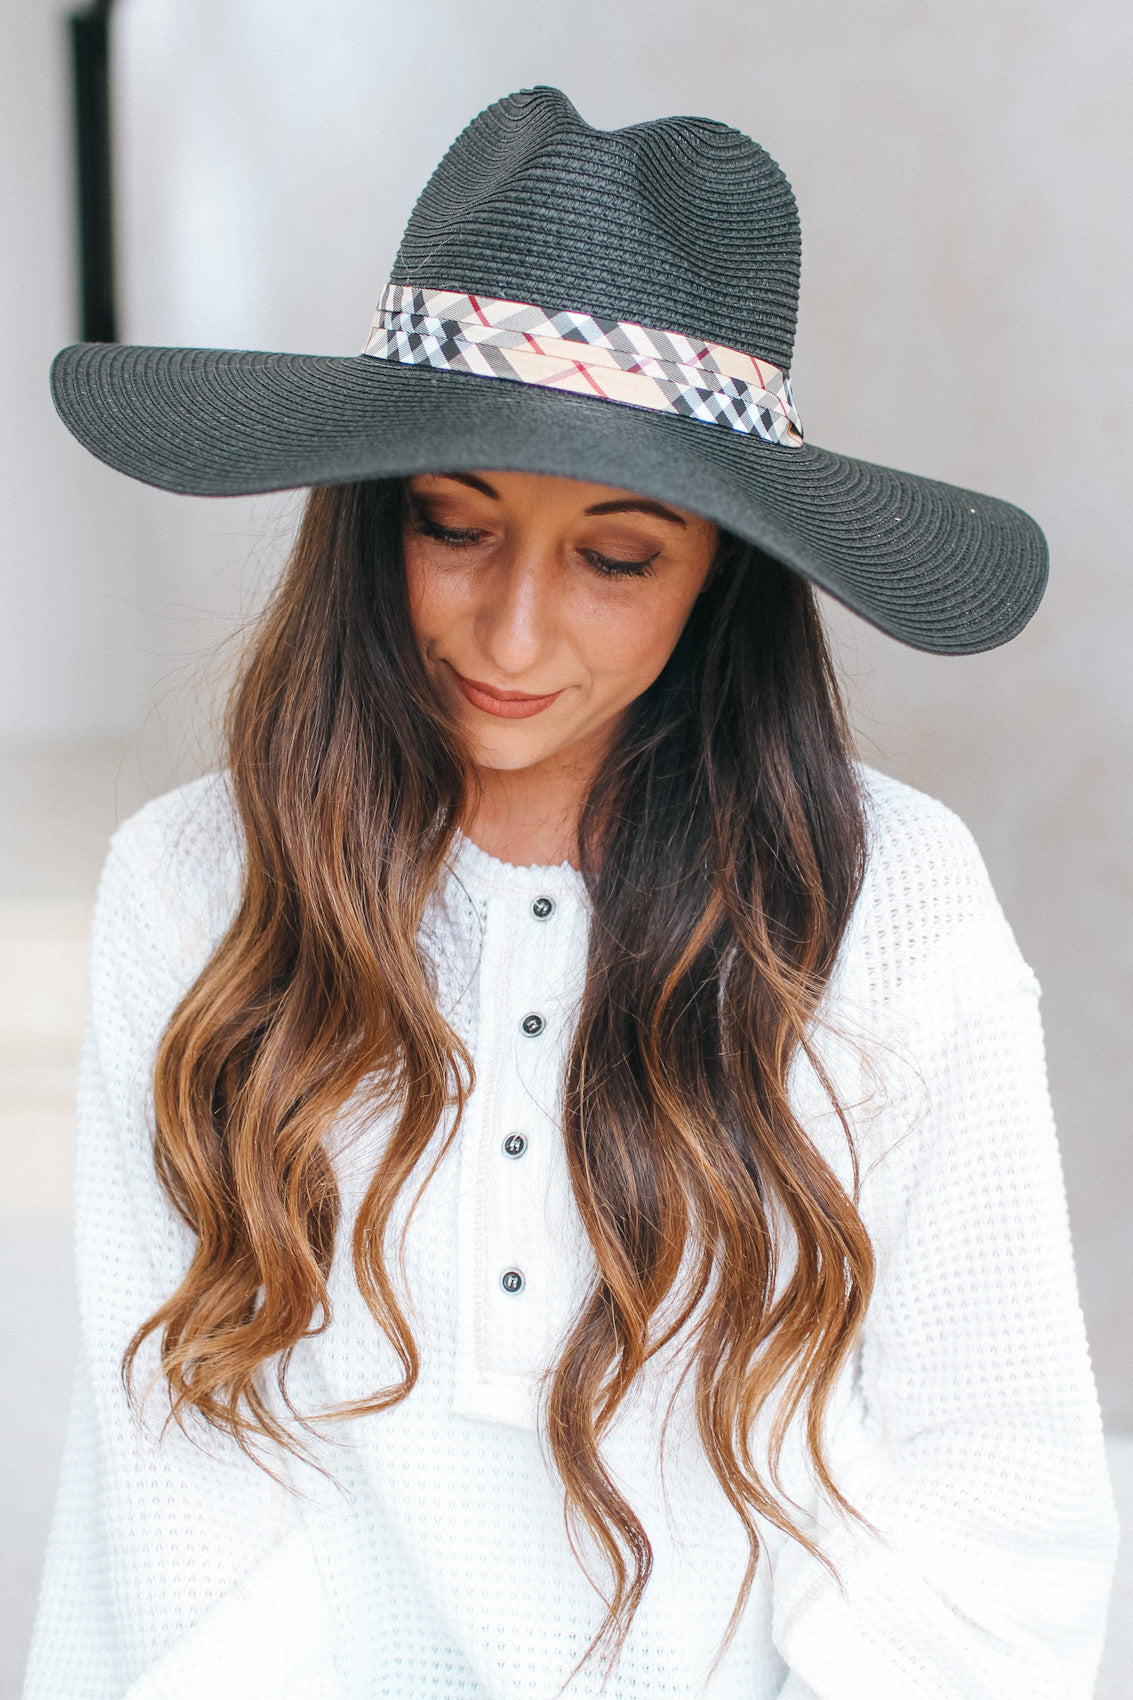 Plaid Band Floppy Hat